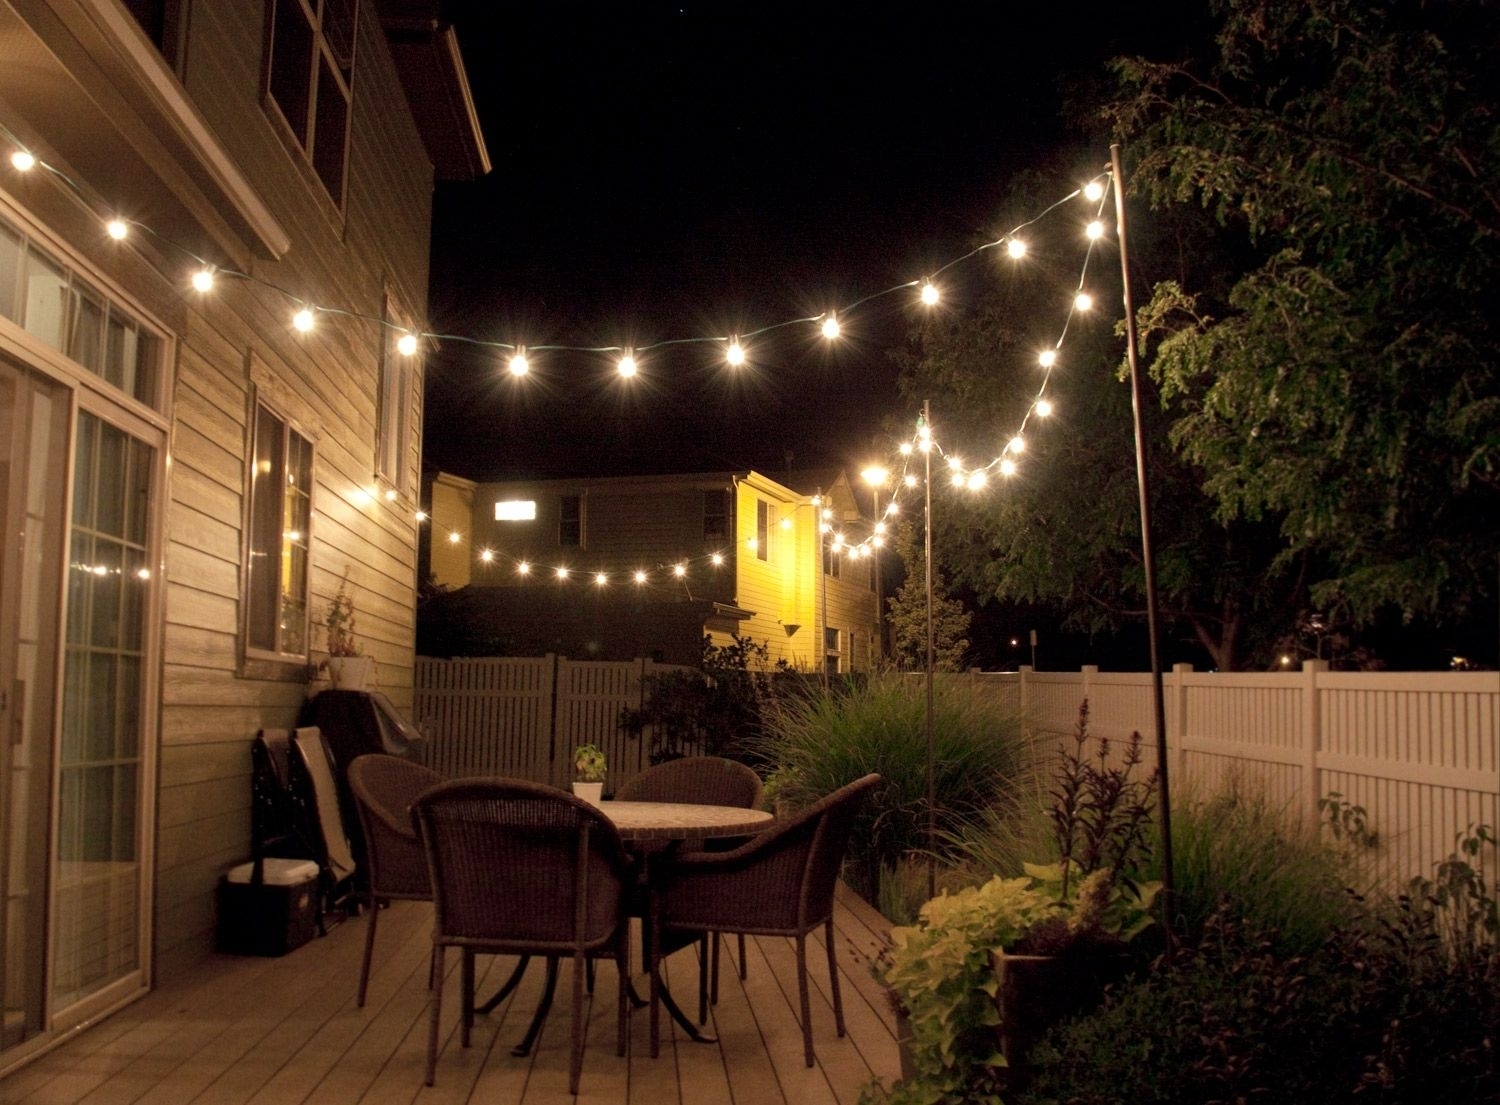 How To Make Inexpensive Poles To Hang String Lights On – Café Style In Outdoor Hanging Lights On String (View 6 of 15)